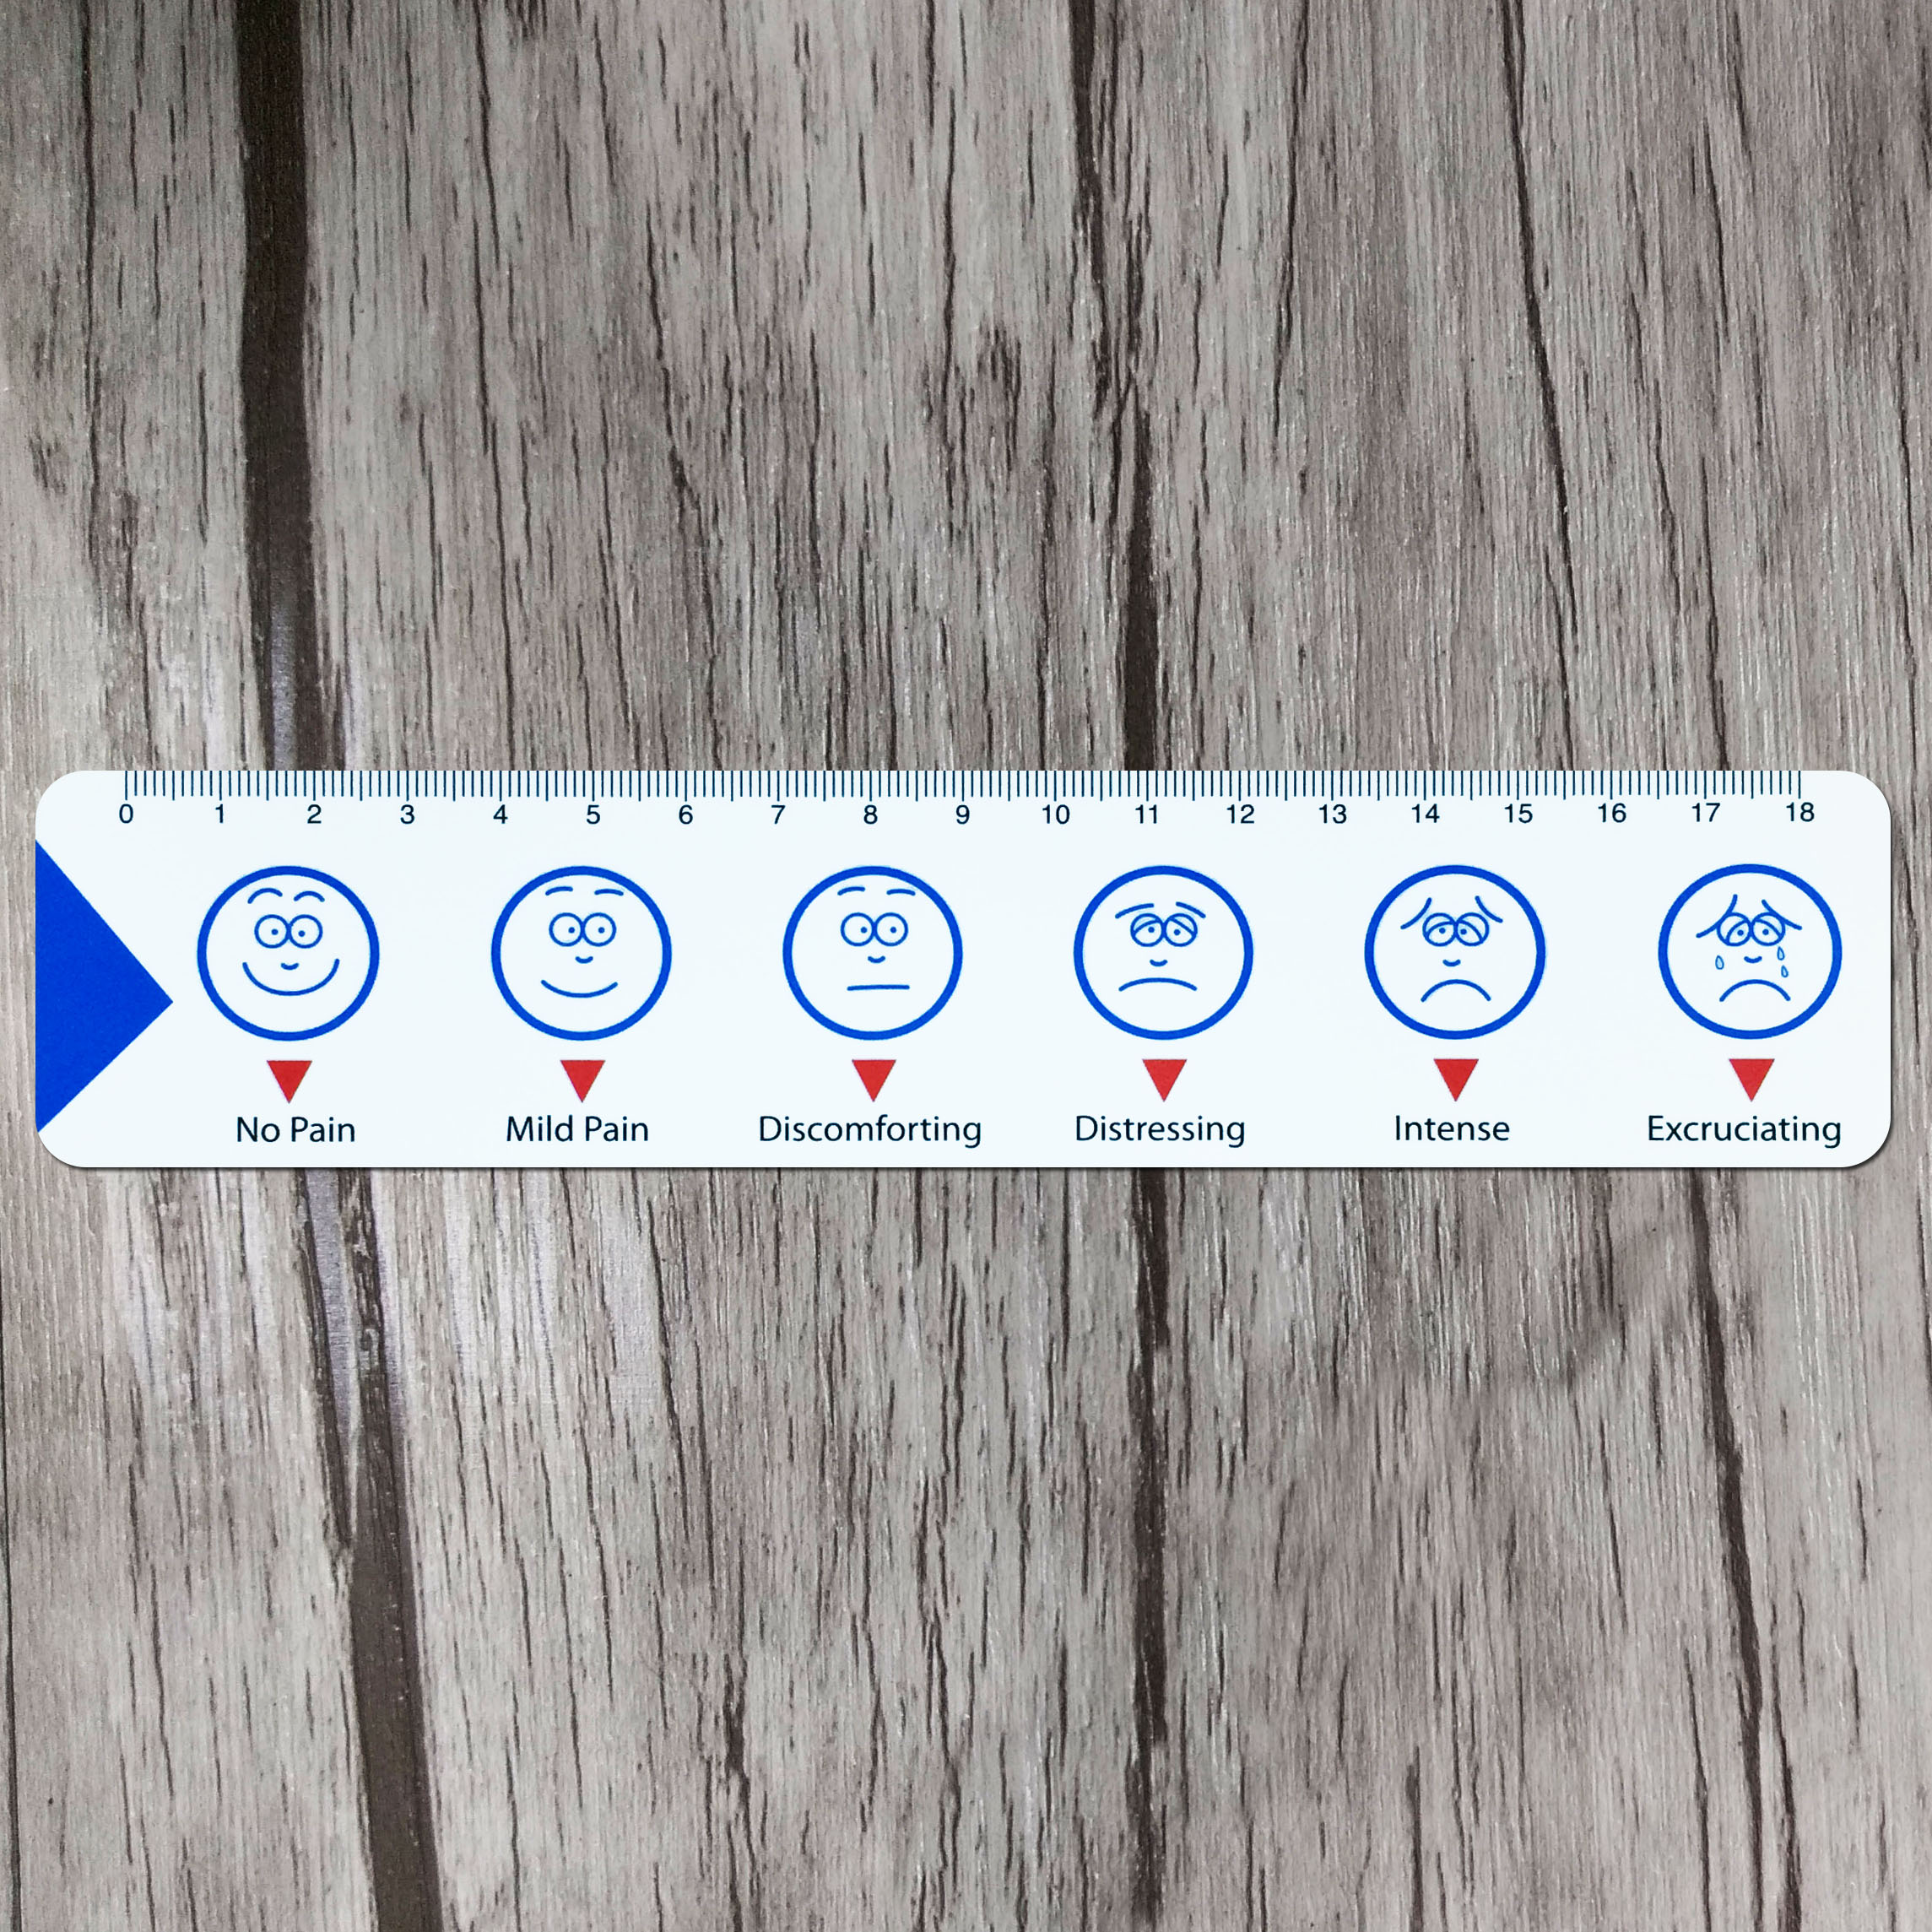 Pain Measure Ruler - KP-D04